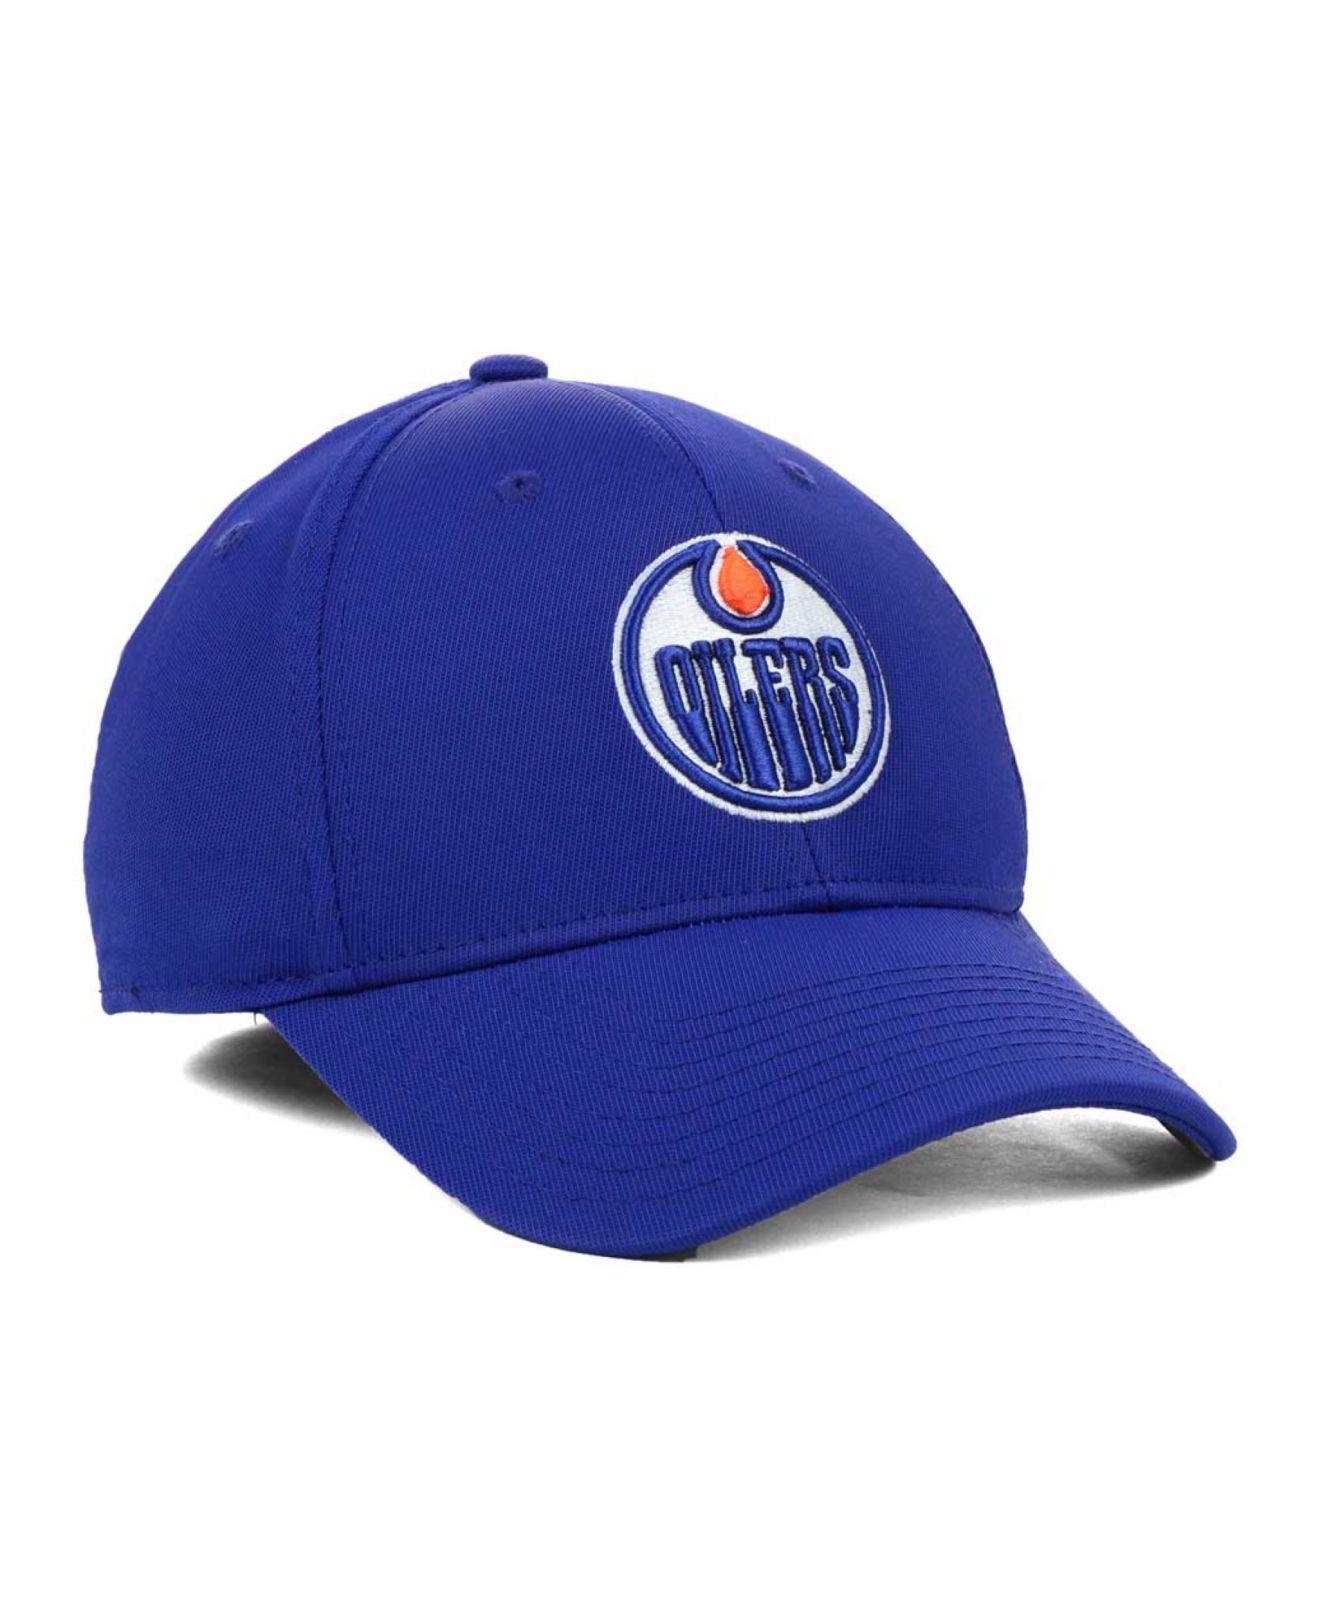 Reebok Edmonton Oilers Hat Trick Cap In Navy Blue For Men Lyst